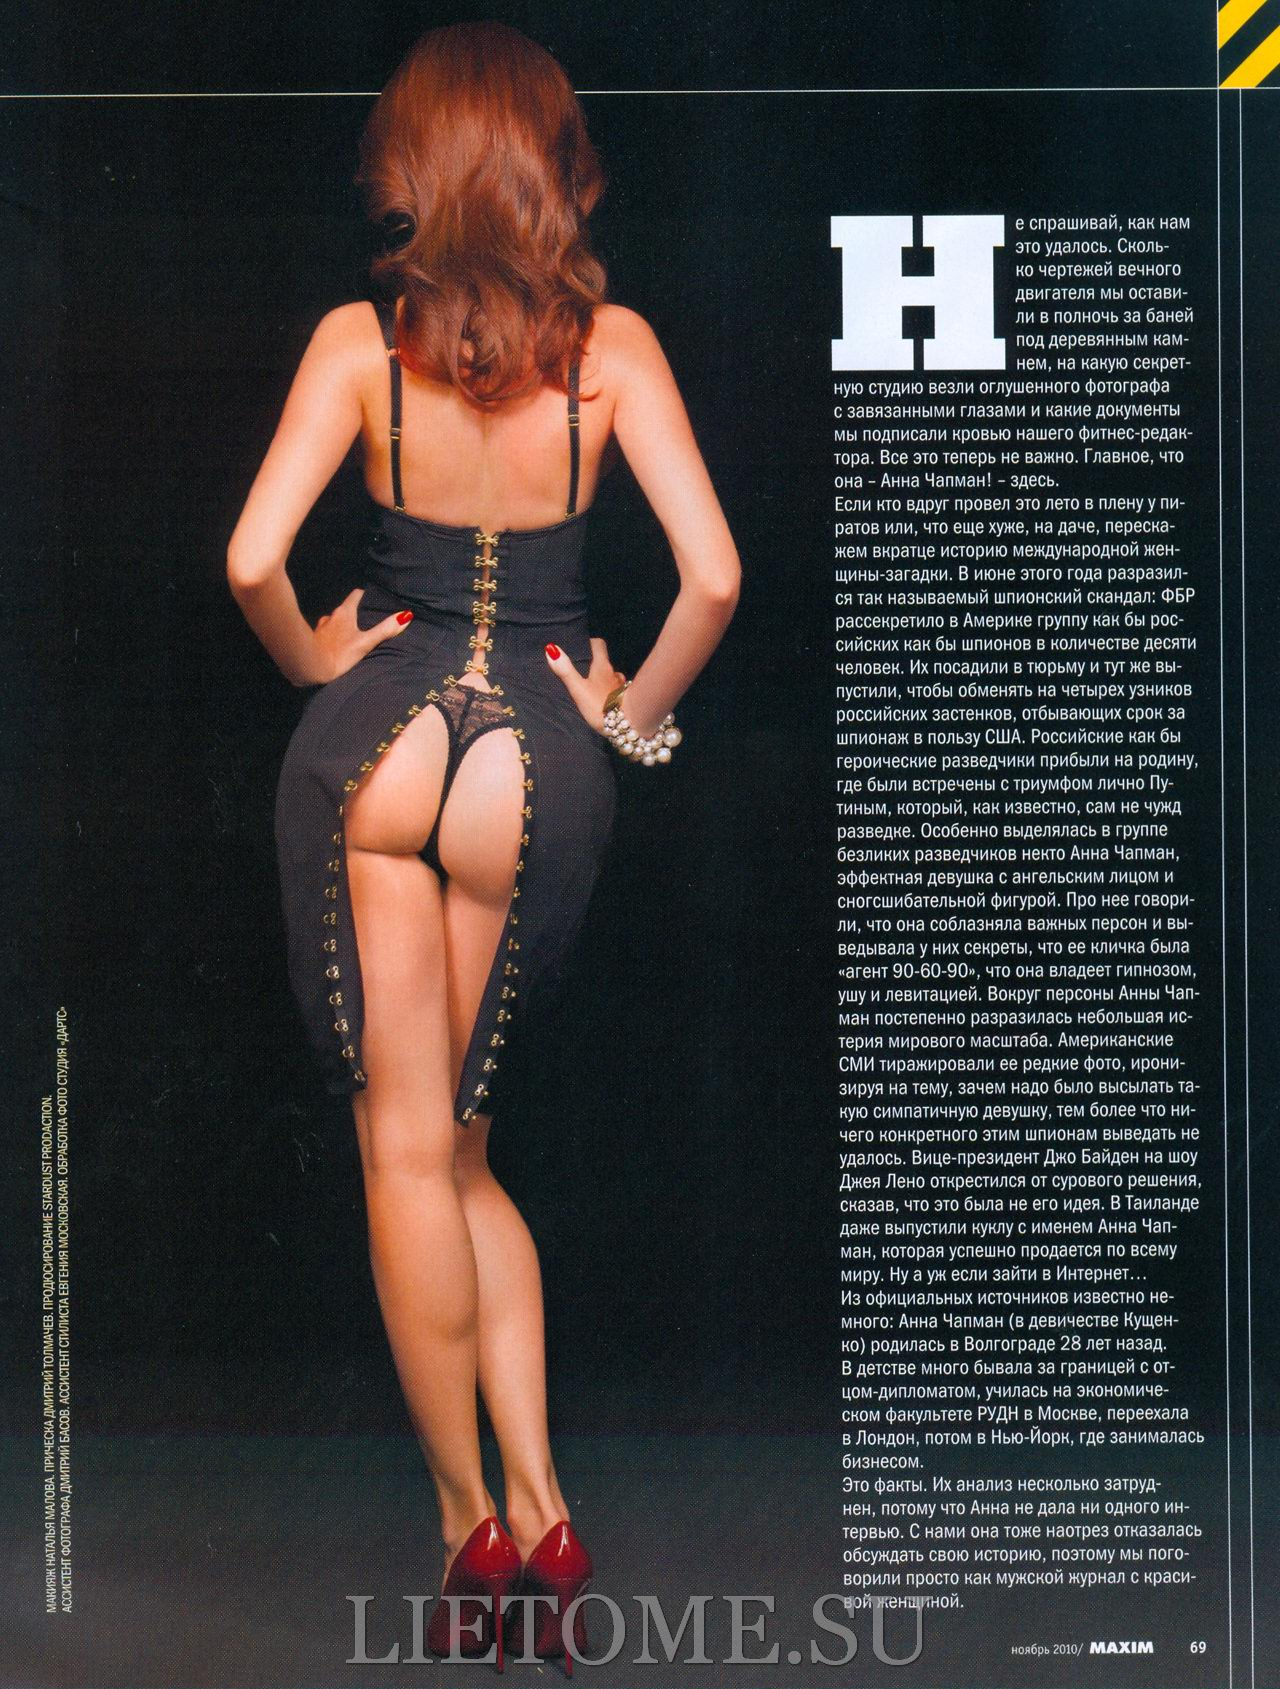 The Hottest Russian Spy Anna Chapman Leaked Nude S From